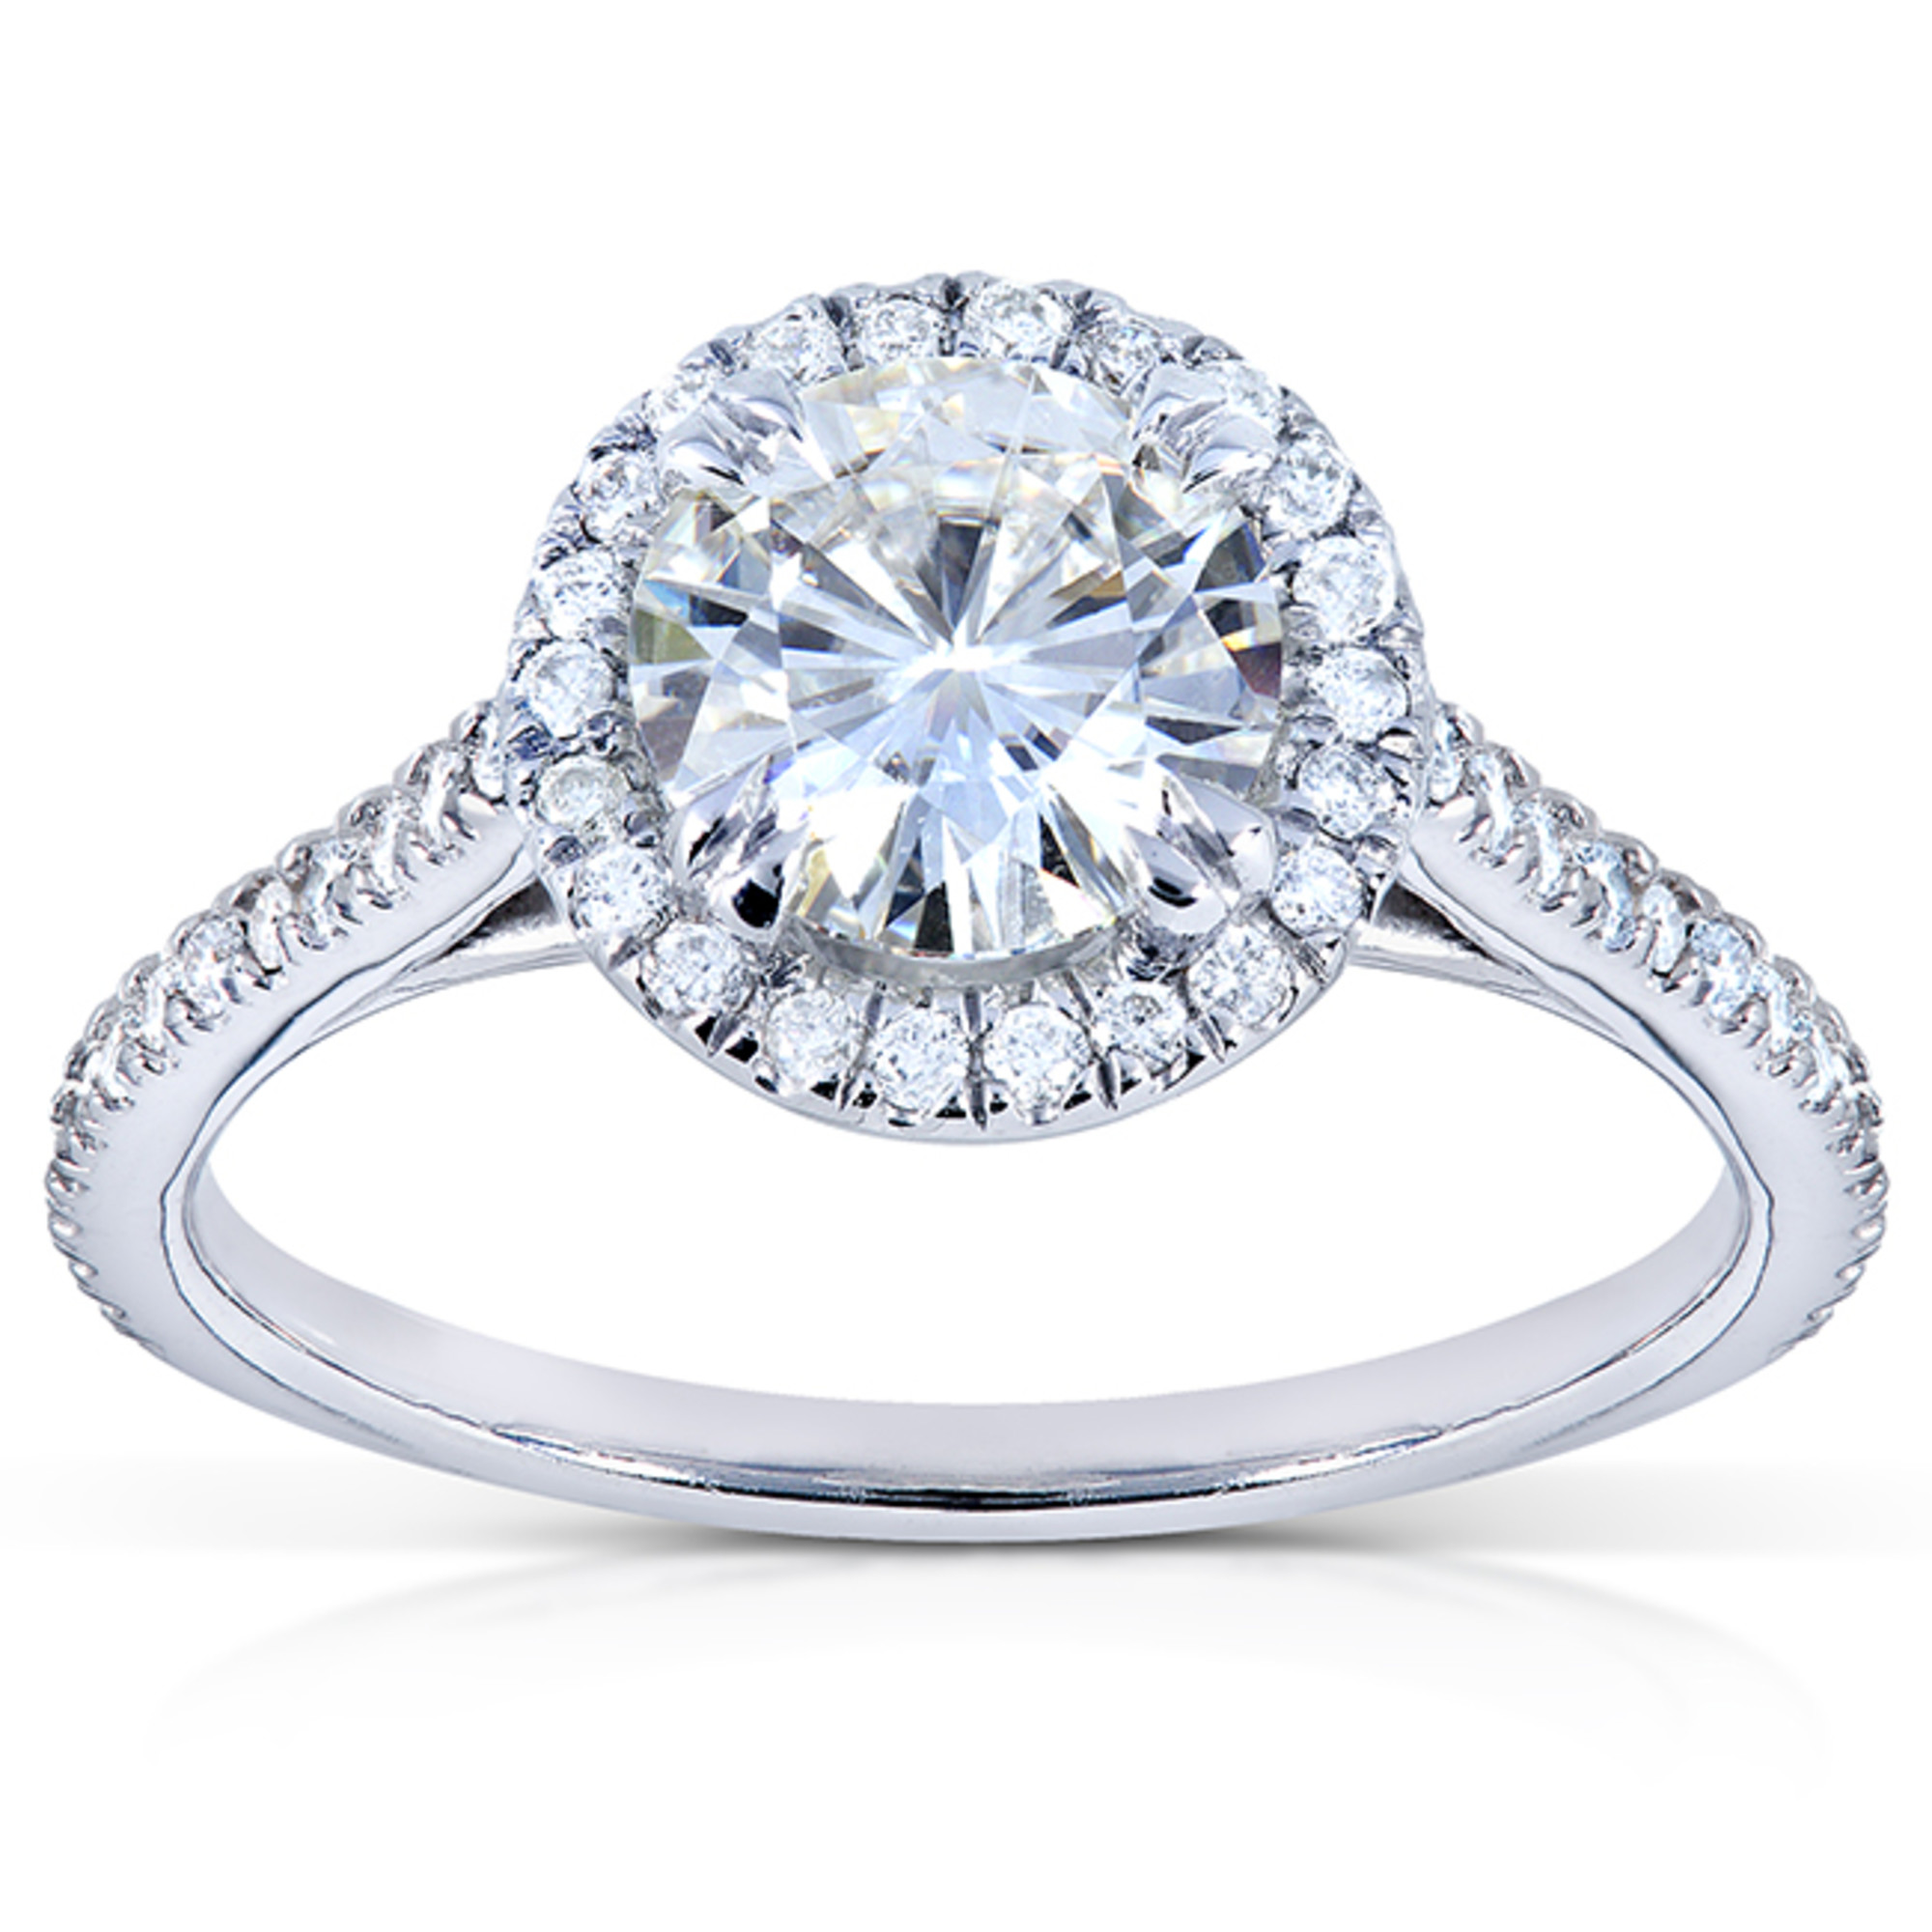 Round-cut Moissanite Engagement Ring with Diamond 1 1 4 CTW 14k White Gold (6.5mm) by